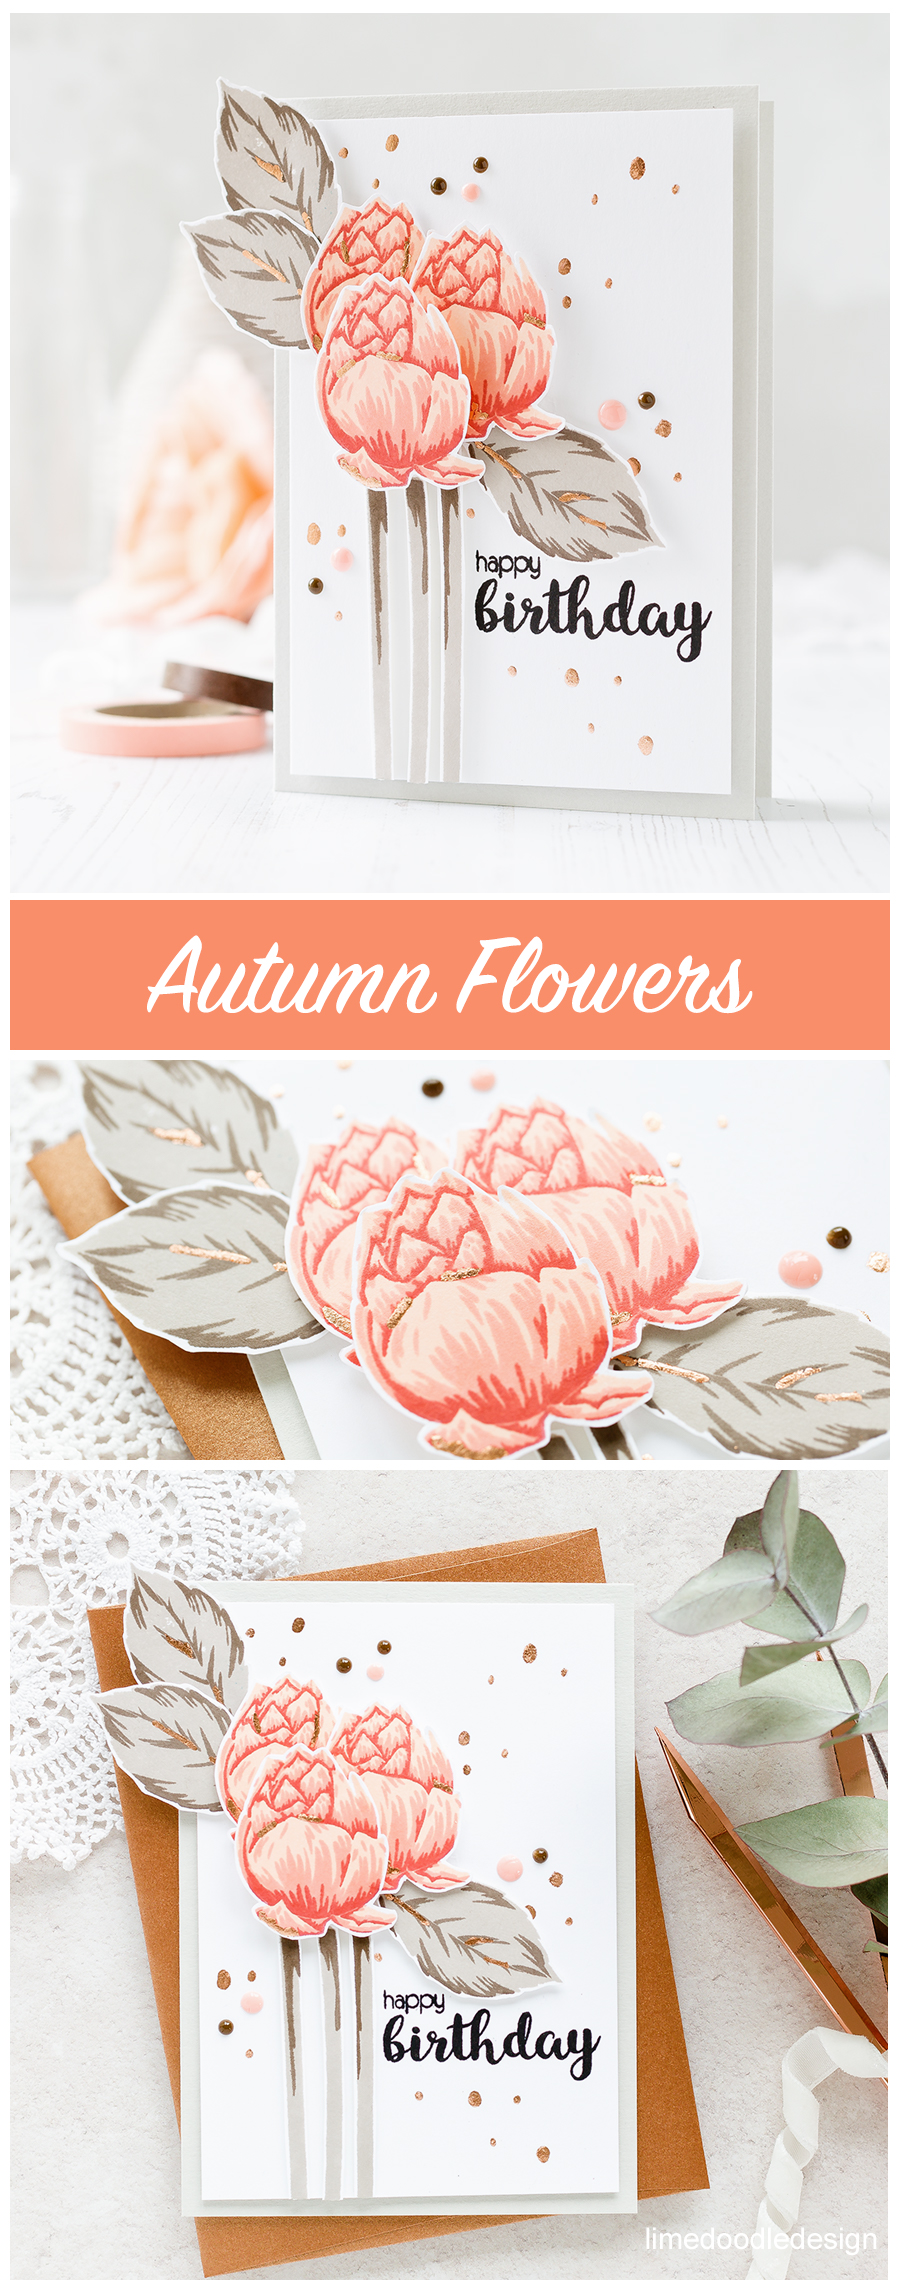 Autumn flowers by Debby Hughes - using a muted colour scheme to stretch our beautiful flower stamps from the spring and summer to the autumn months. Find out more about this handmade card: http://limedoodledesign.com/2017/07/autumn-flowers/